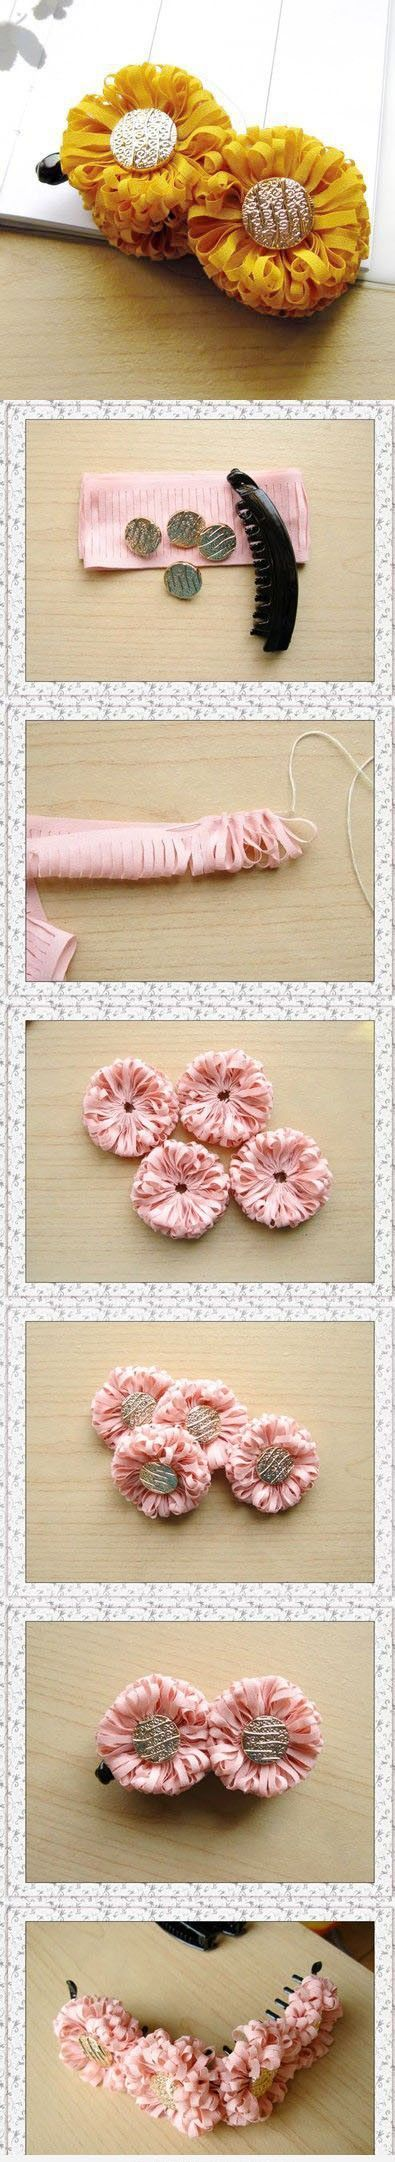 DIY: Interesting Easy Craft Ideas. The fabric could be small flower print and the centers could be broaches, wine corks, buttons...